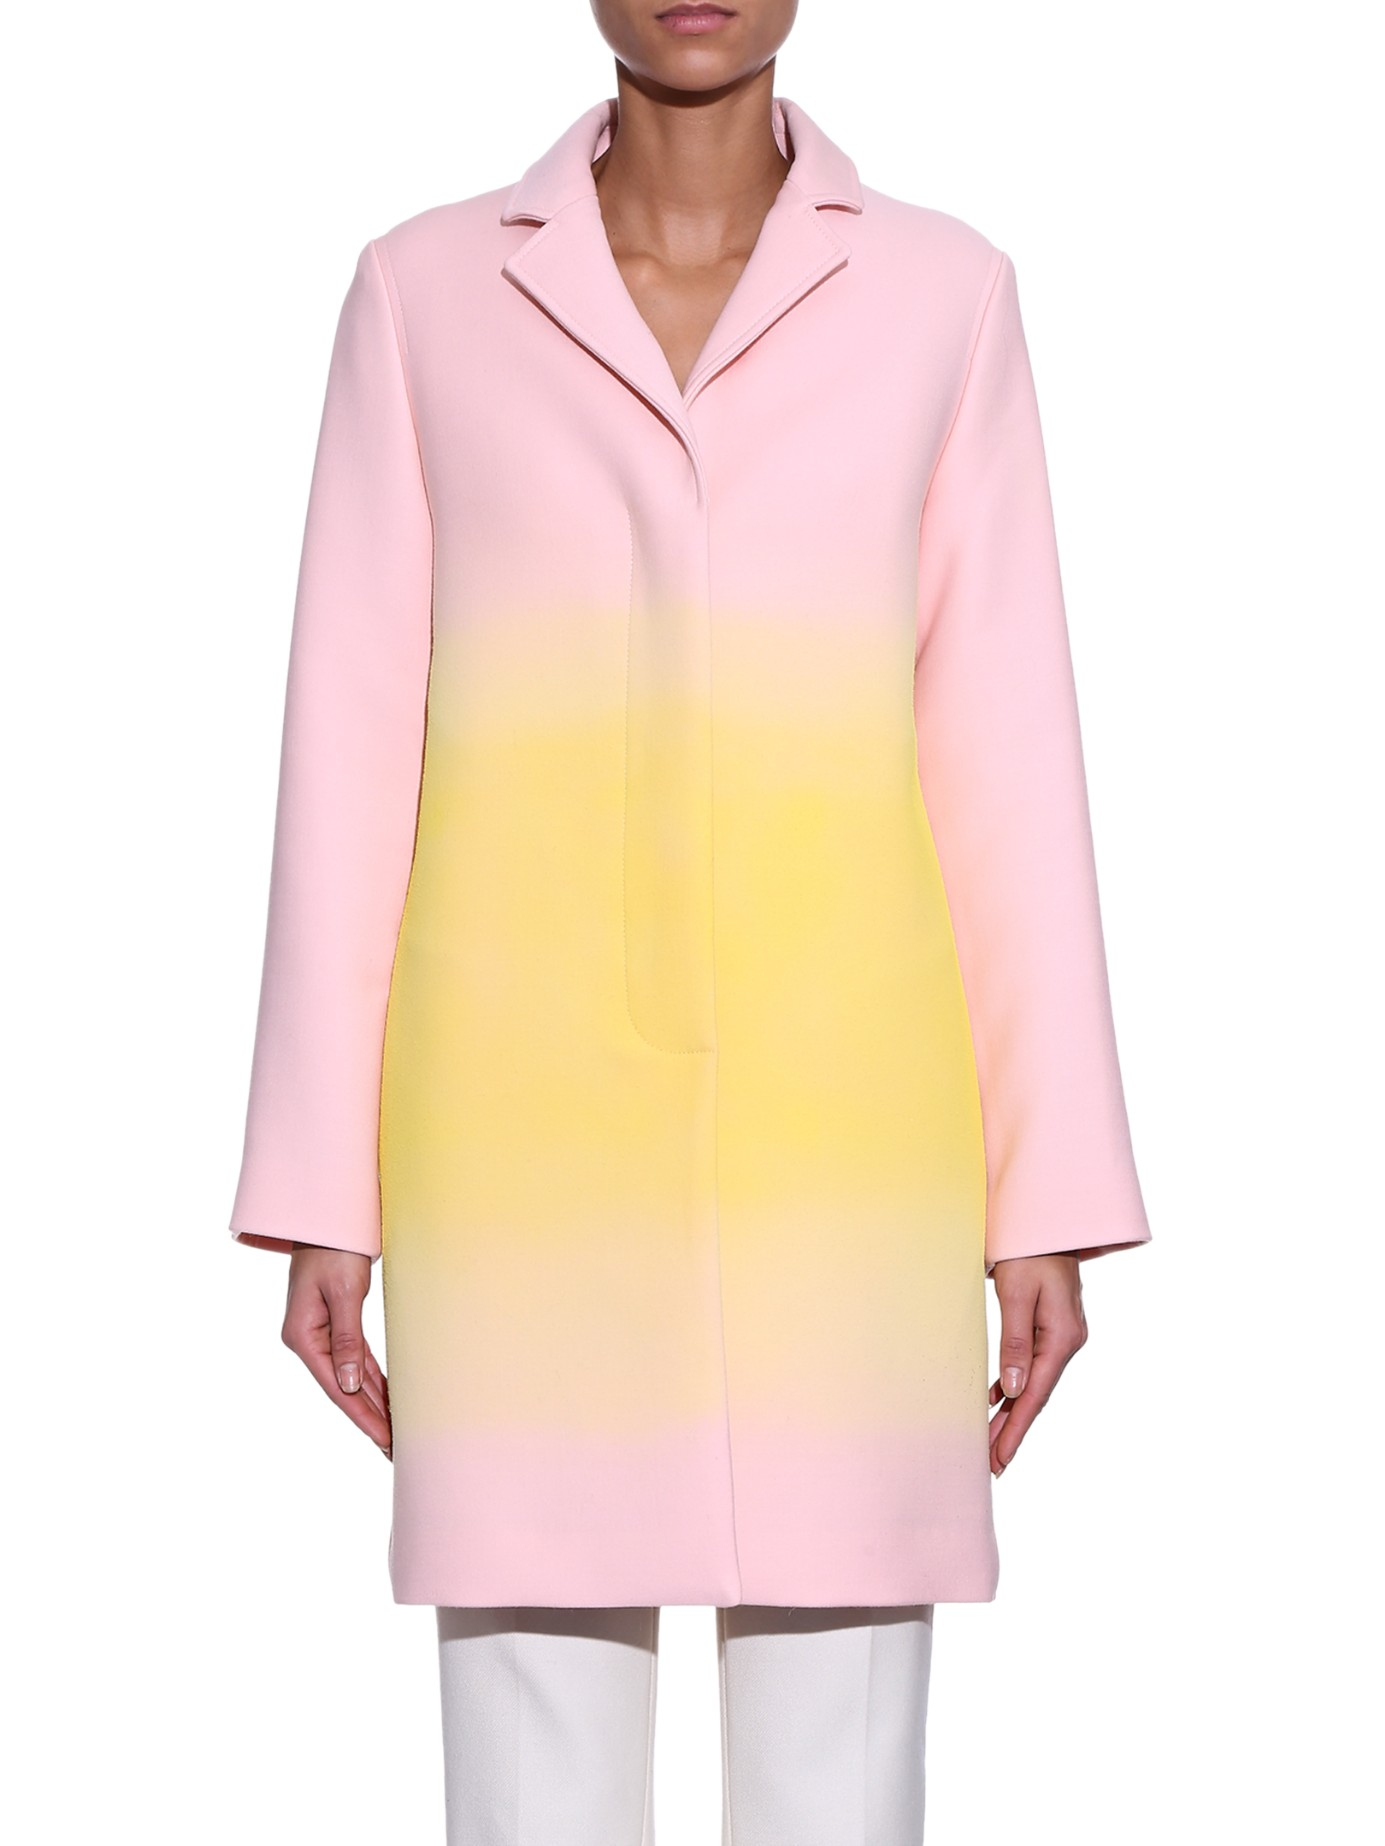 Jonathan Saunders Clere Ombr 233 Single Breasted Coat In Pink